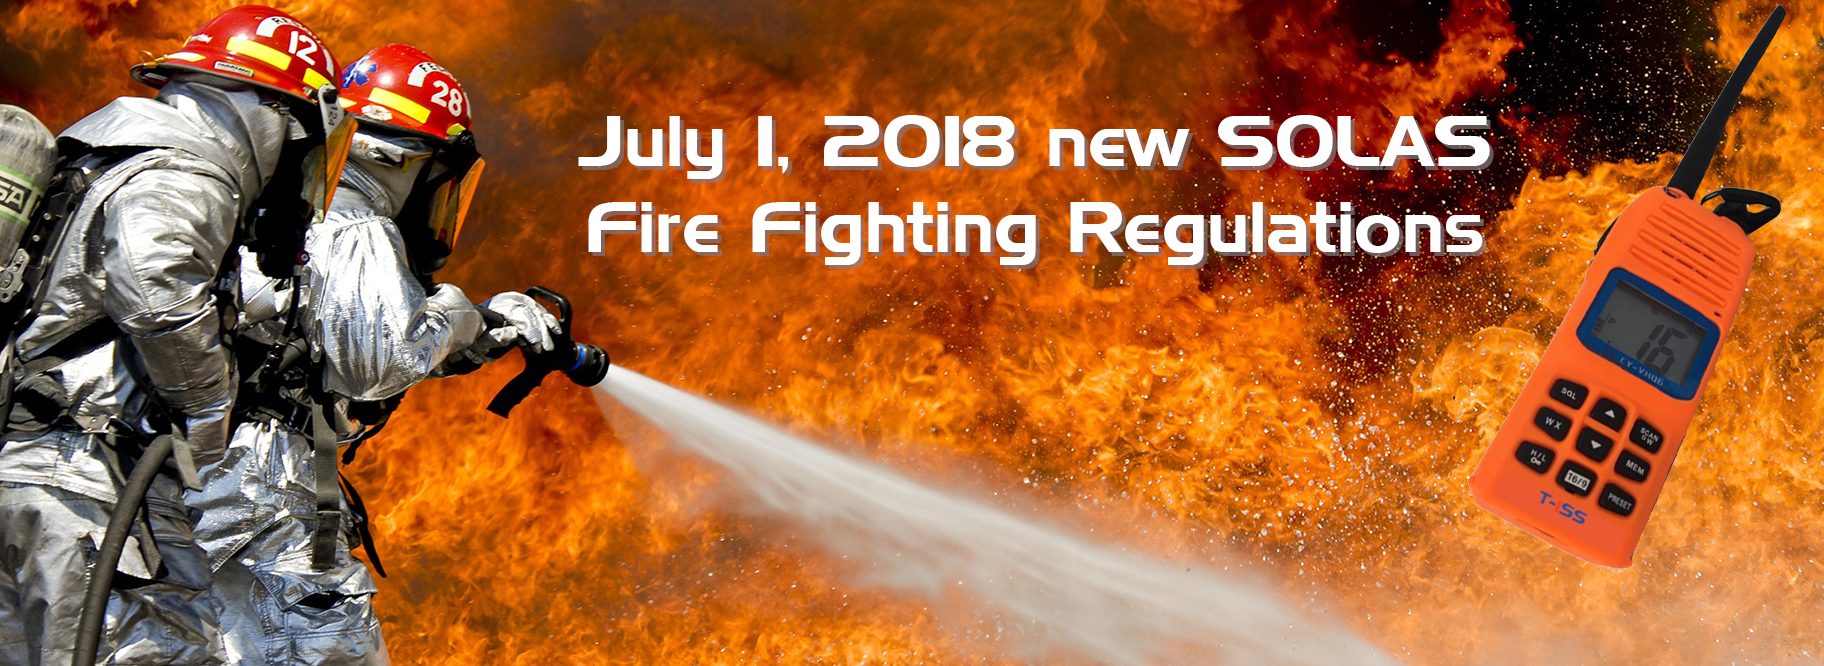 SOLAS Fire Fighting Regulations T-ISS Sffety Suppliers